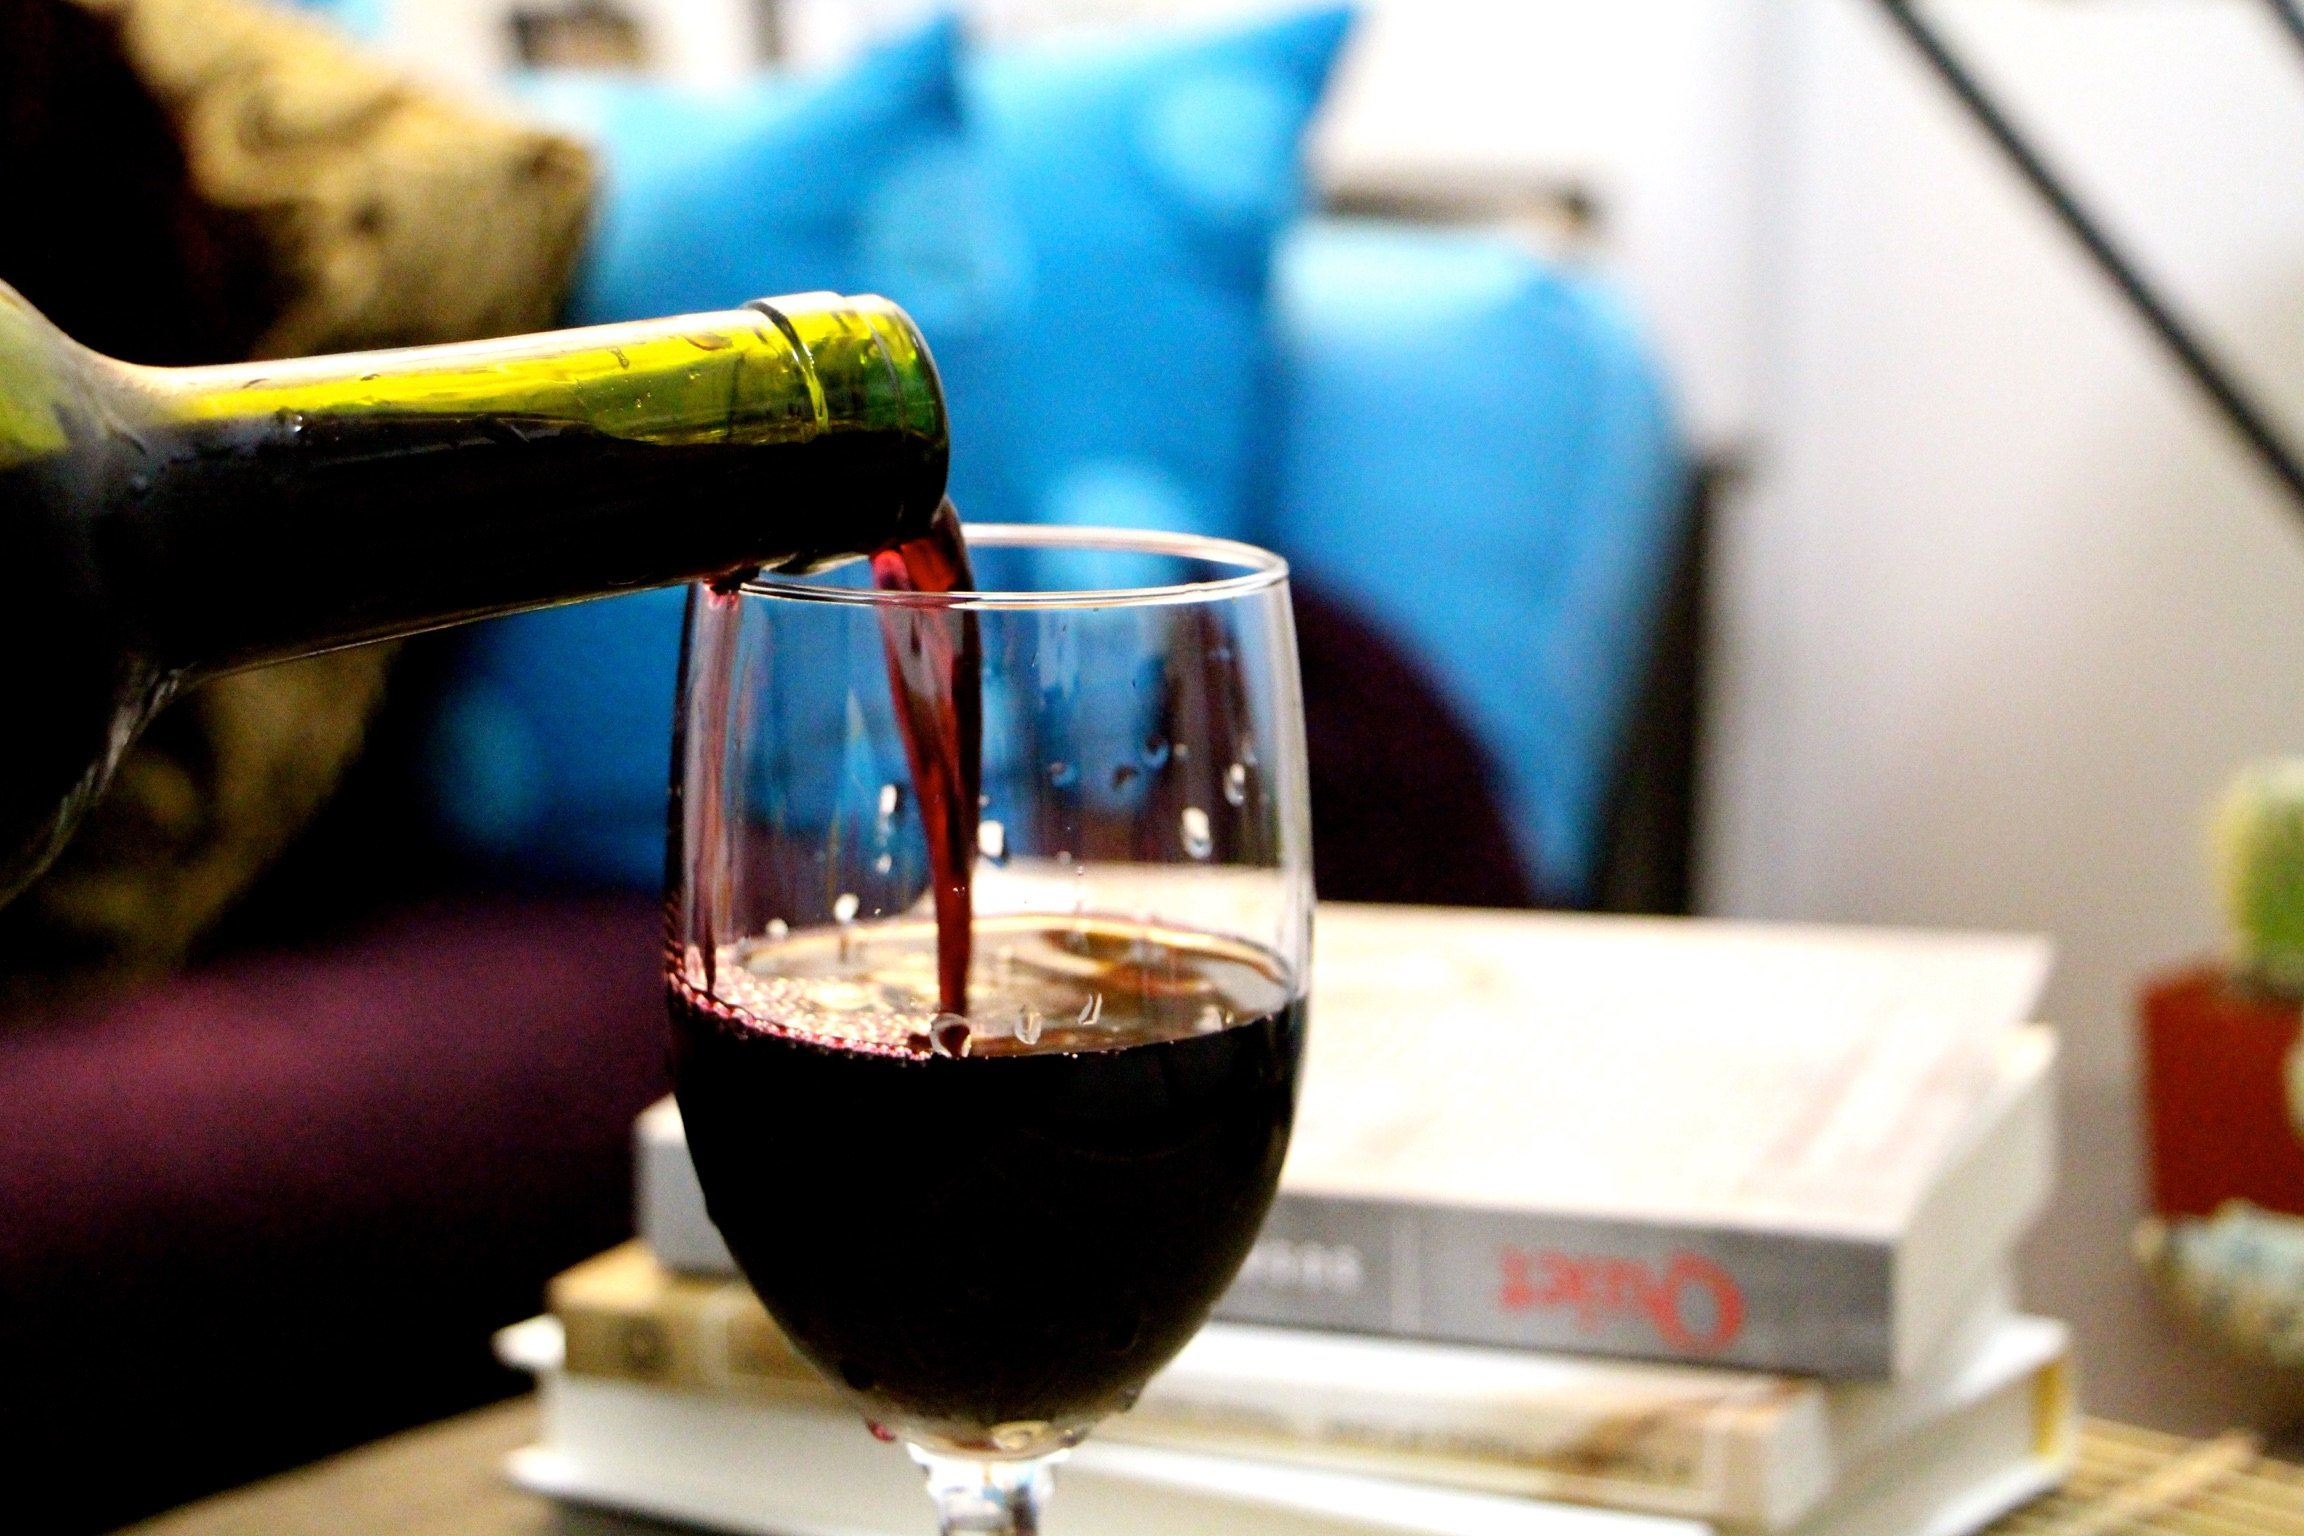 Antioxidant in red wine 'may relieve pain for millions of arthritis sufferers'